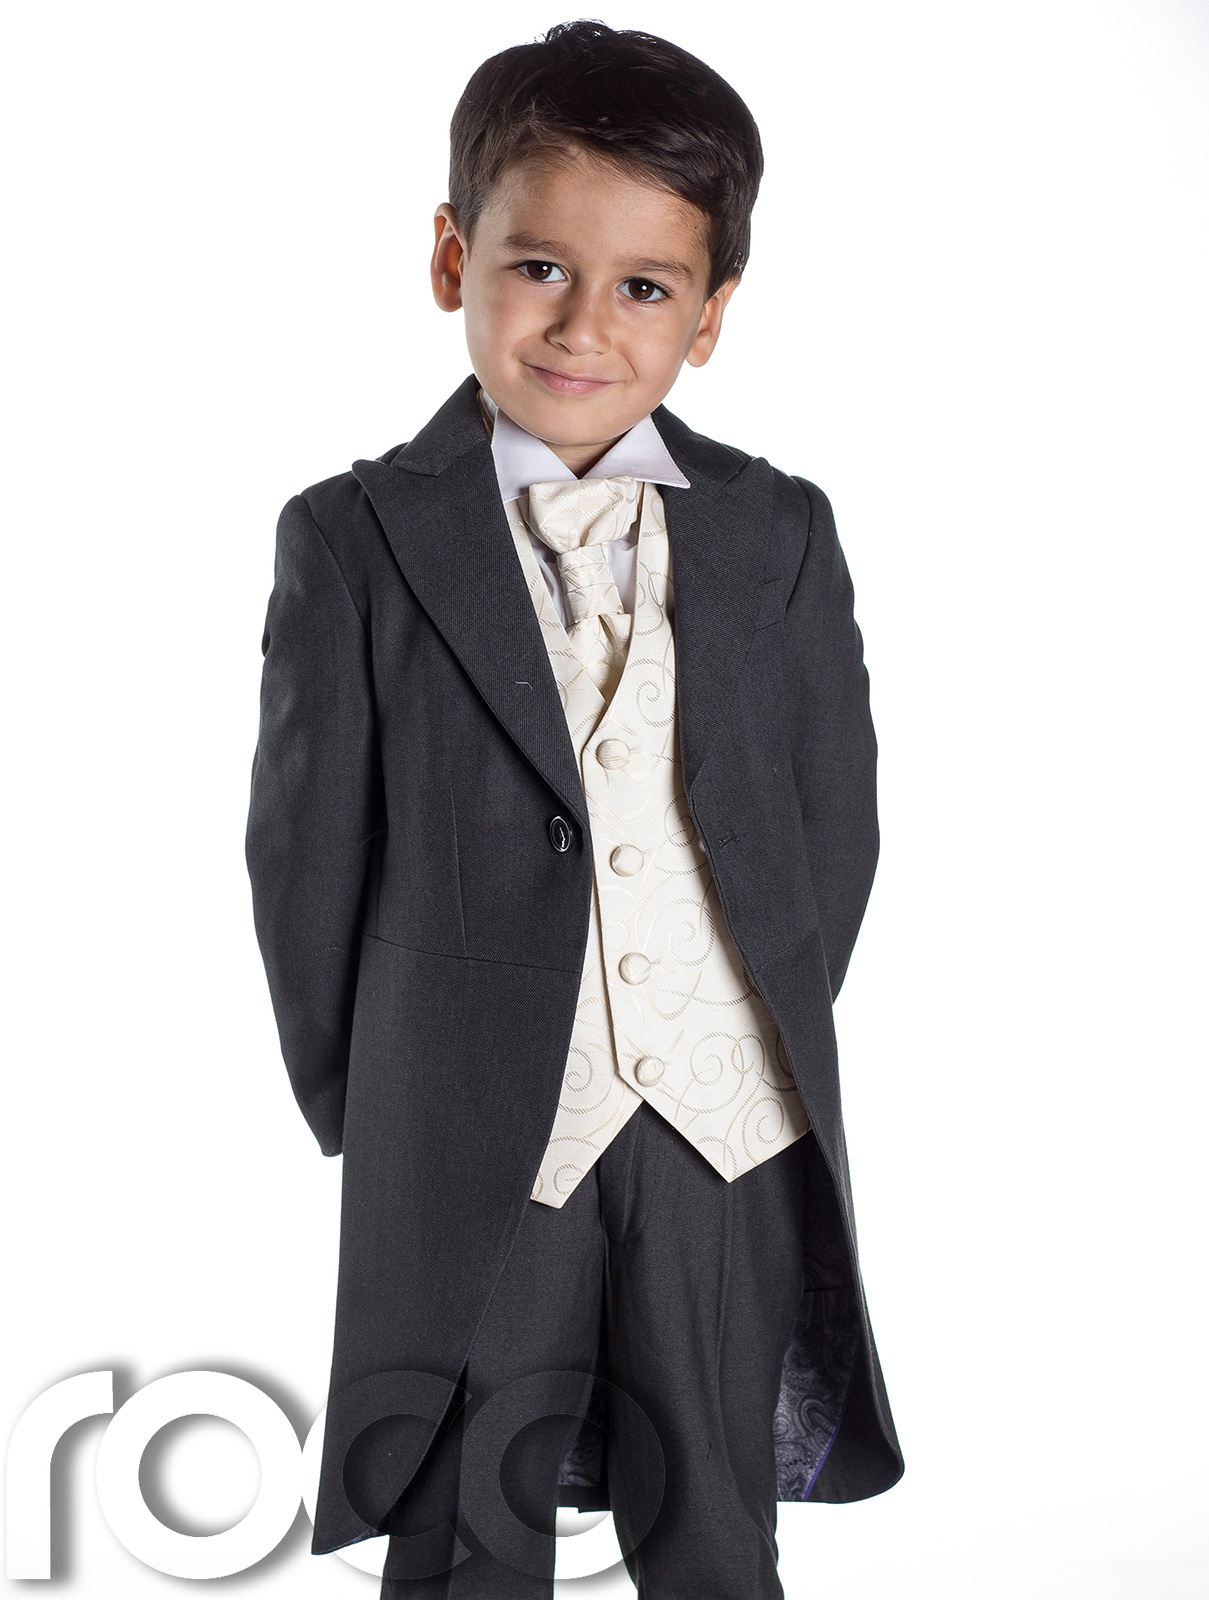 Navy blue boy suit,Boy outfit,Made in Europe,Navy outfit,Children suit,Ring bearer suit,Baby outfit,Toddler suit,Grey wedding,Christmas suit WhiteBridalBoutique 5 out of 5 stars.